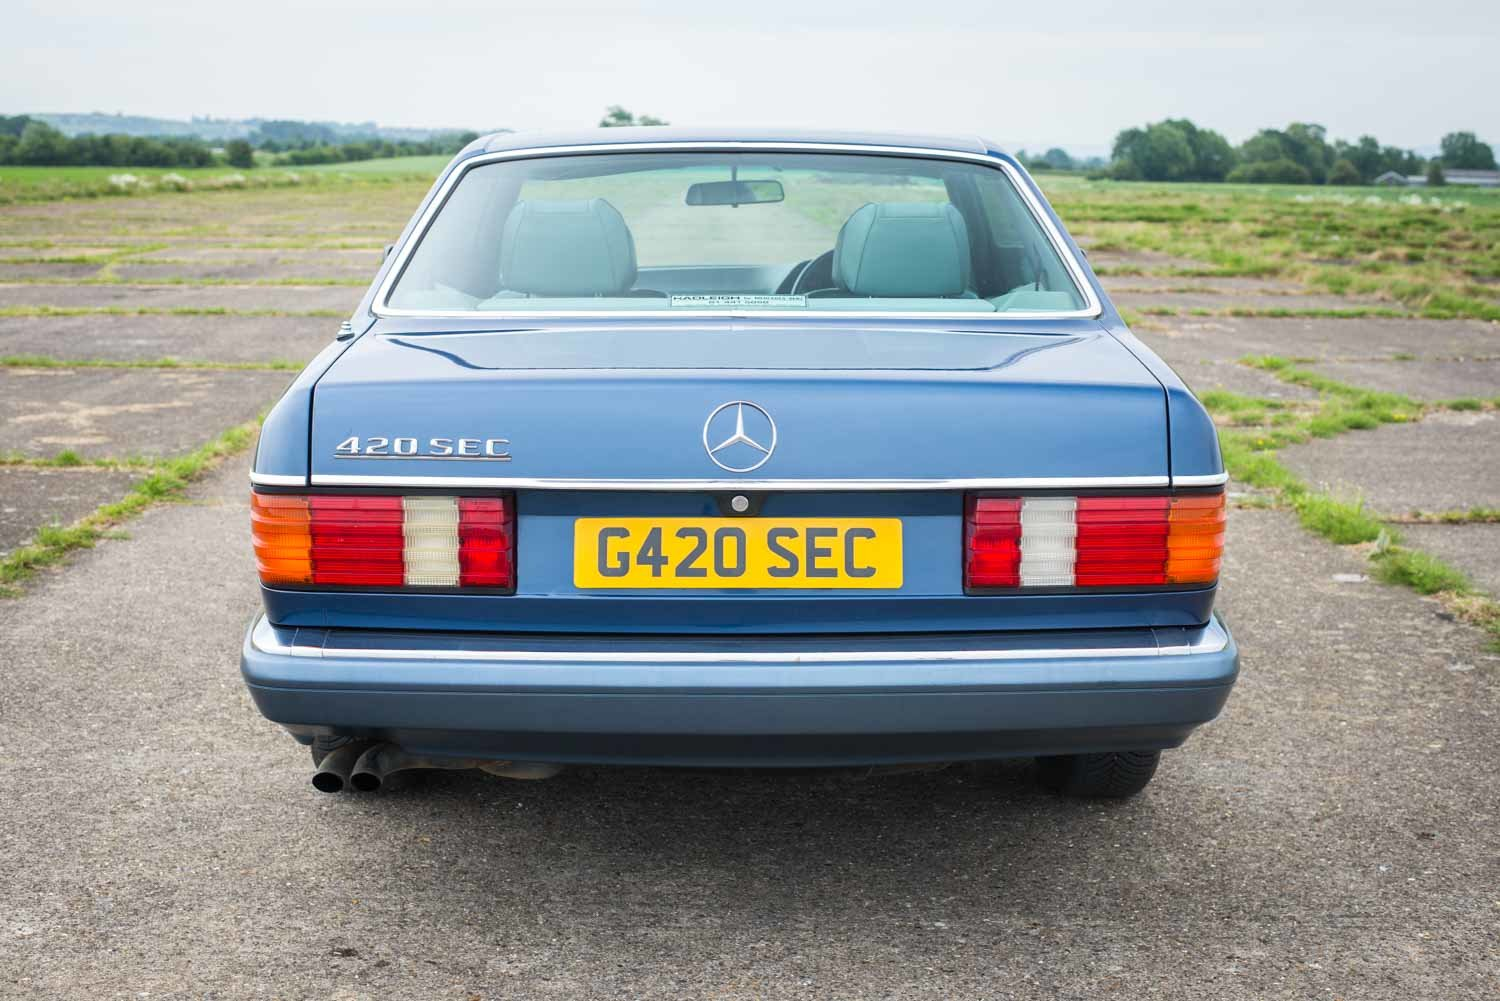 1989 Mercedes-Benz C126 420SEC - 76k Miles - Immaculate For Sale (picture 3 of 6)